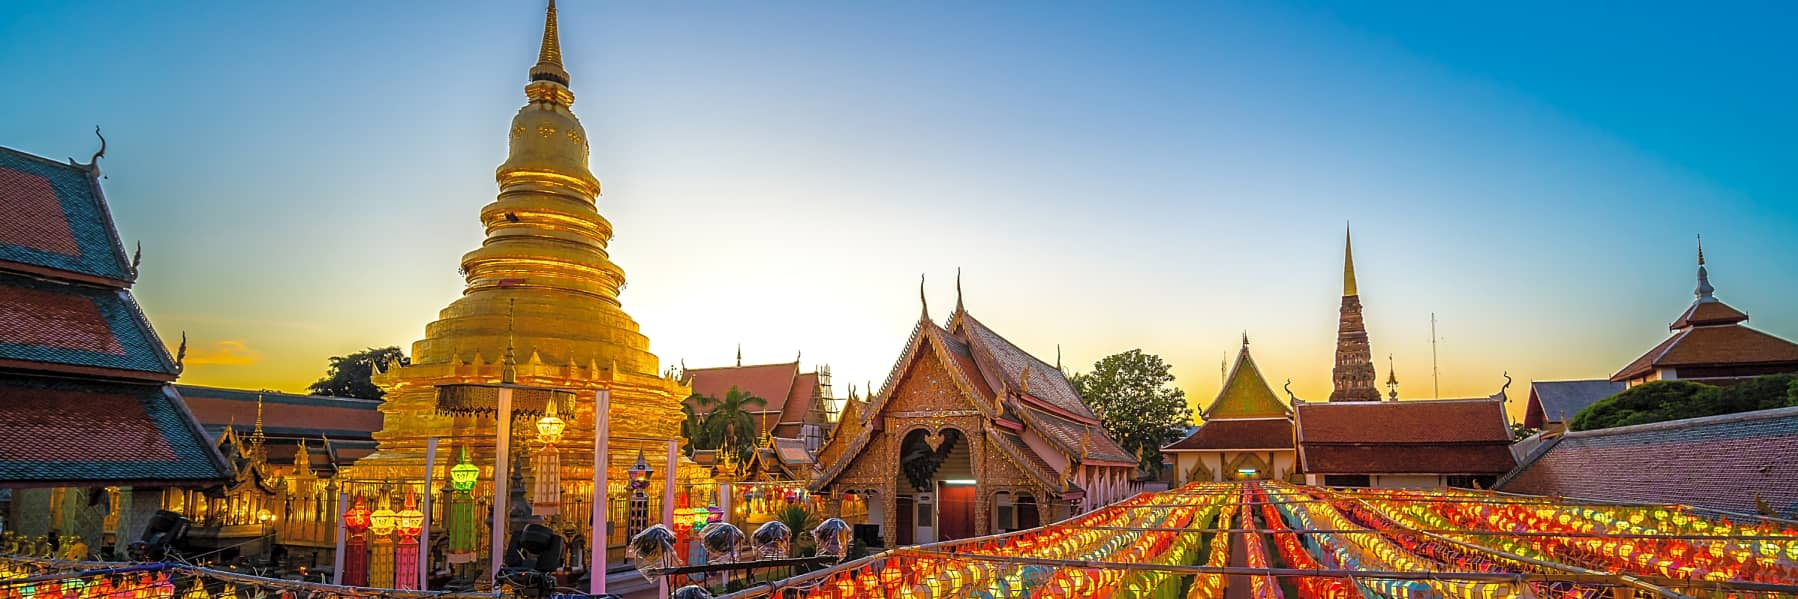 Lamphun and Lampang City Temples Small Group Tour – Full Day gallery